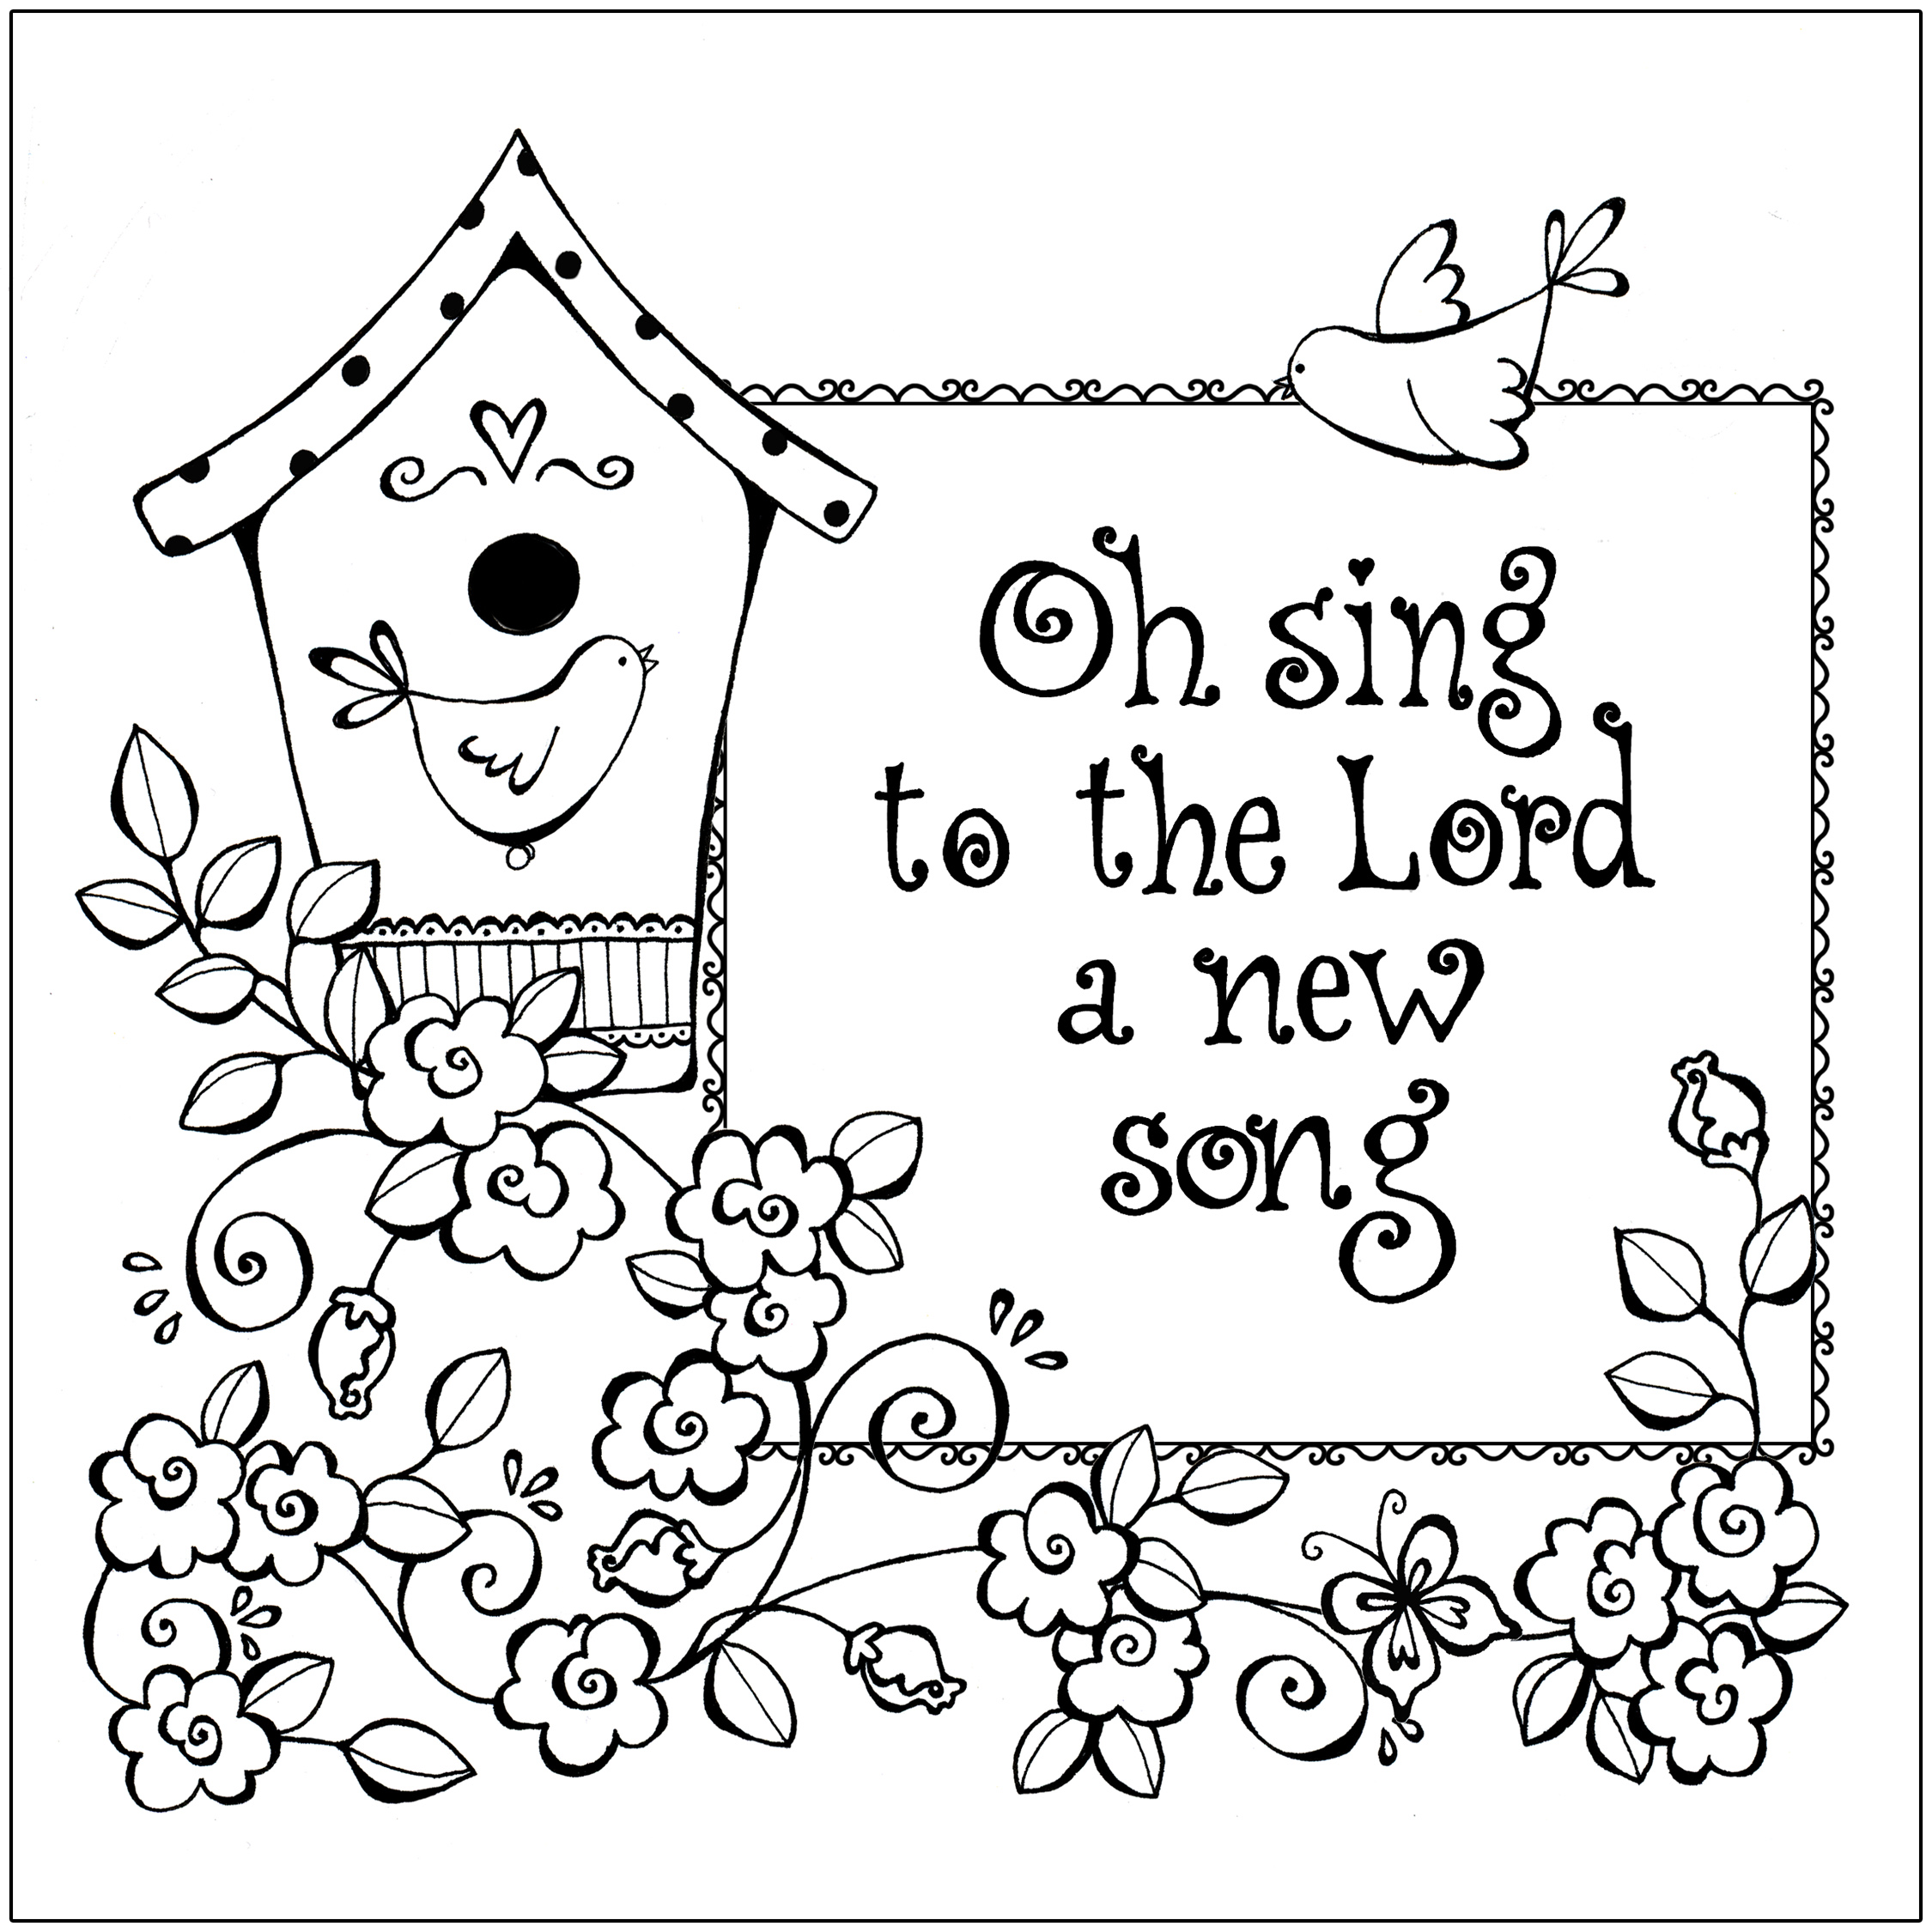 Free printable christian coloring pages for kids best Best coloring books for adults 2016